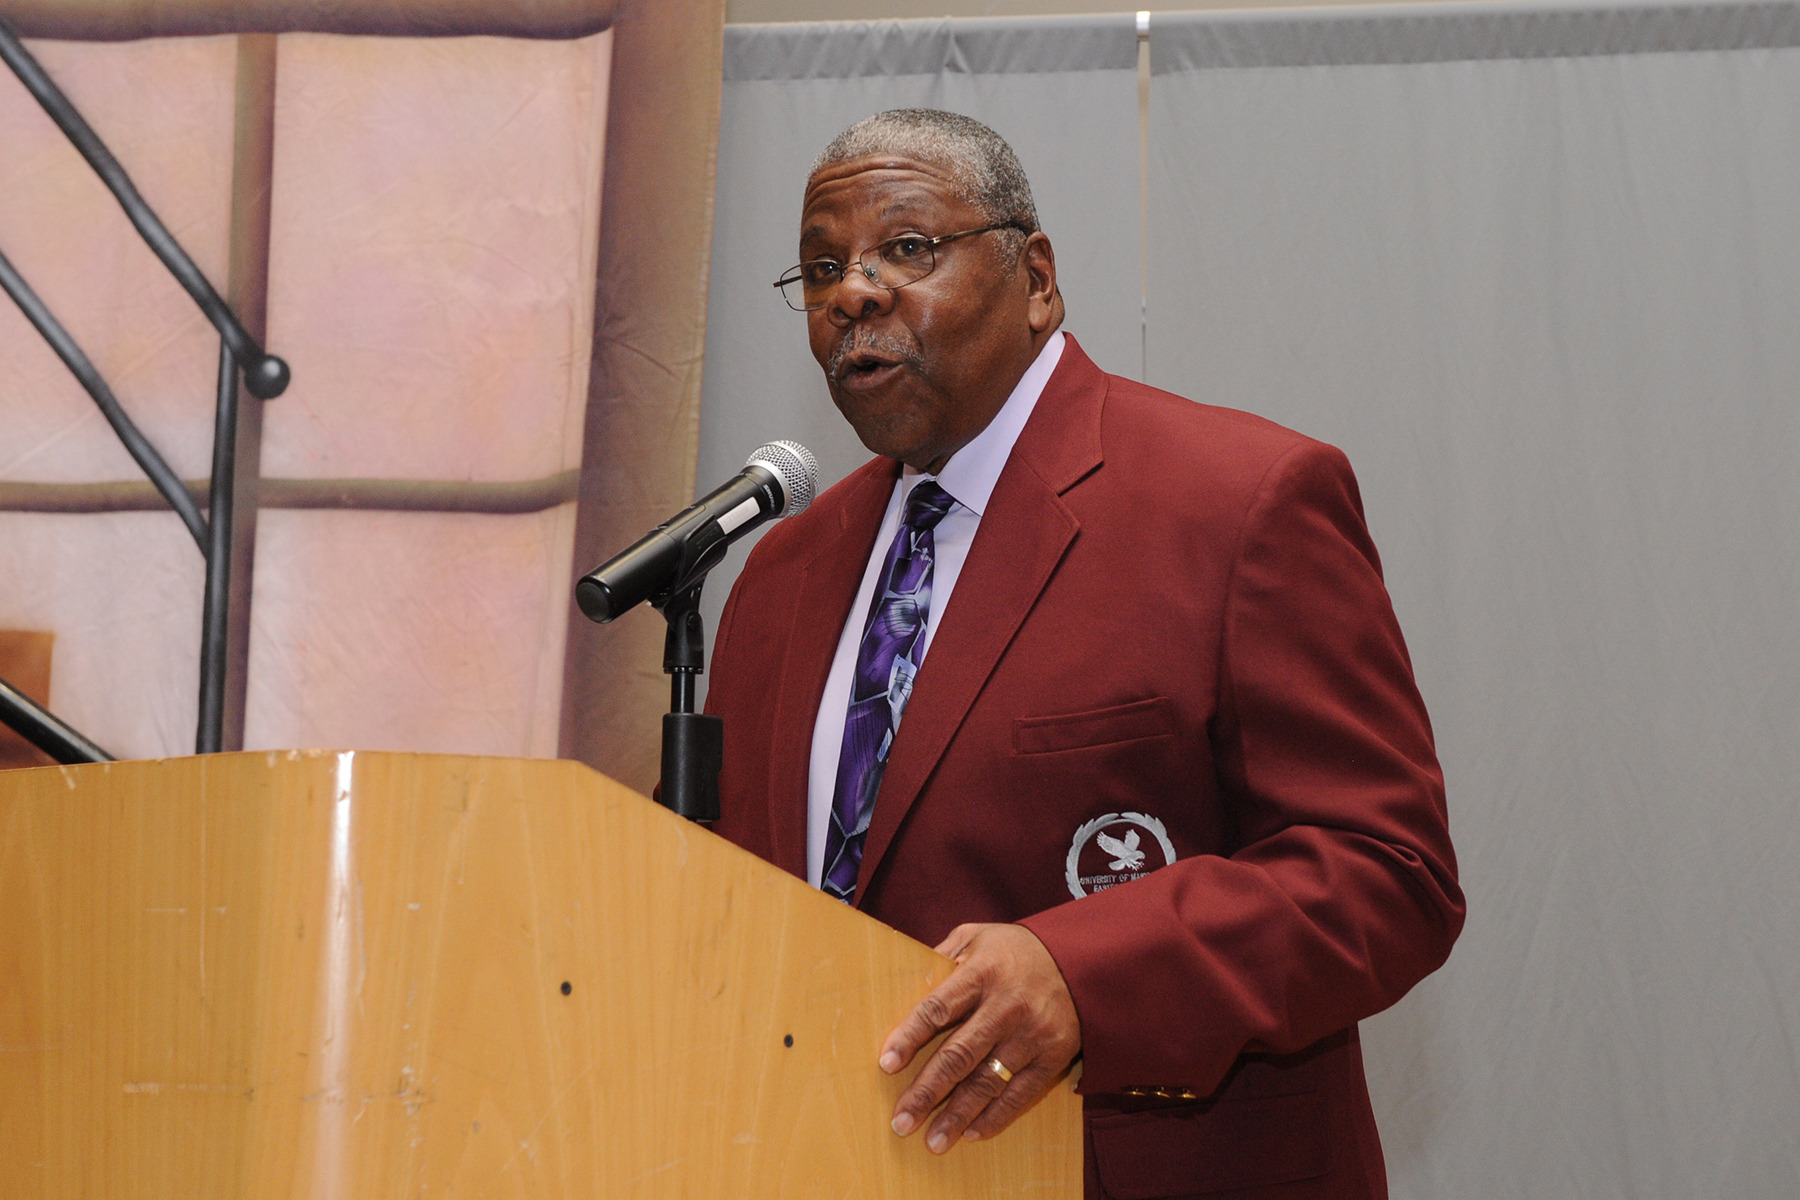 Former Maryland Eastern Shore A.D. Passes Away